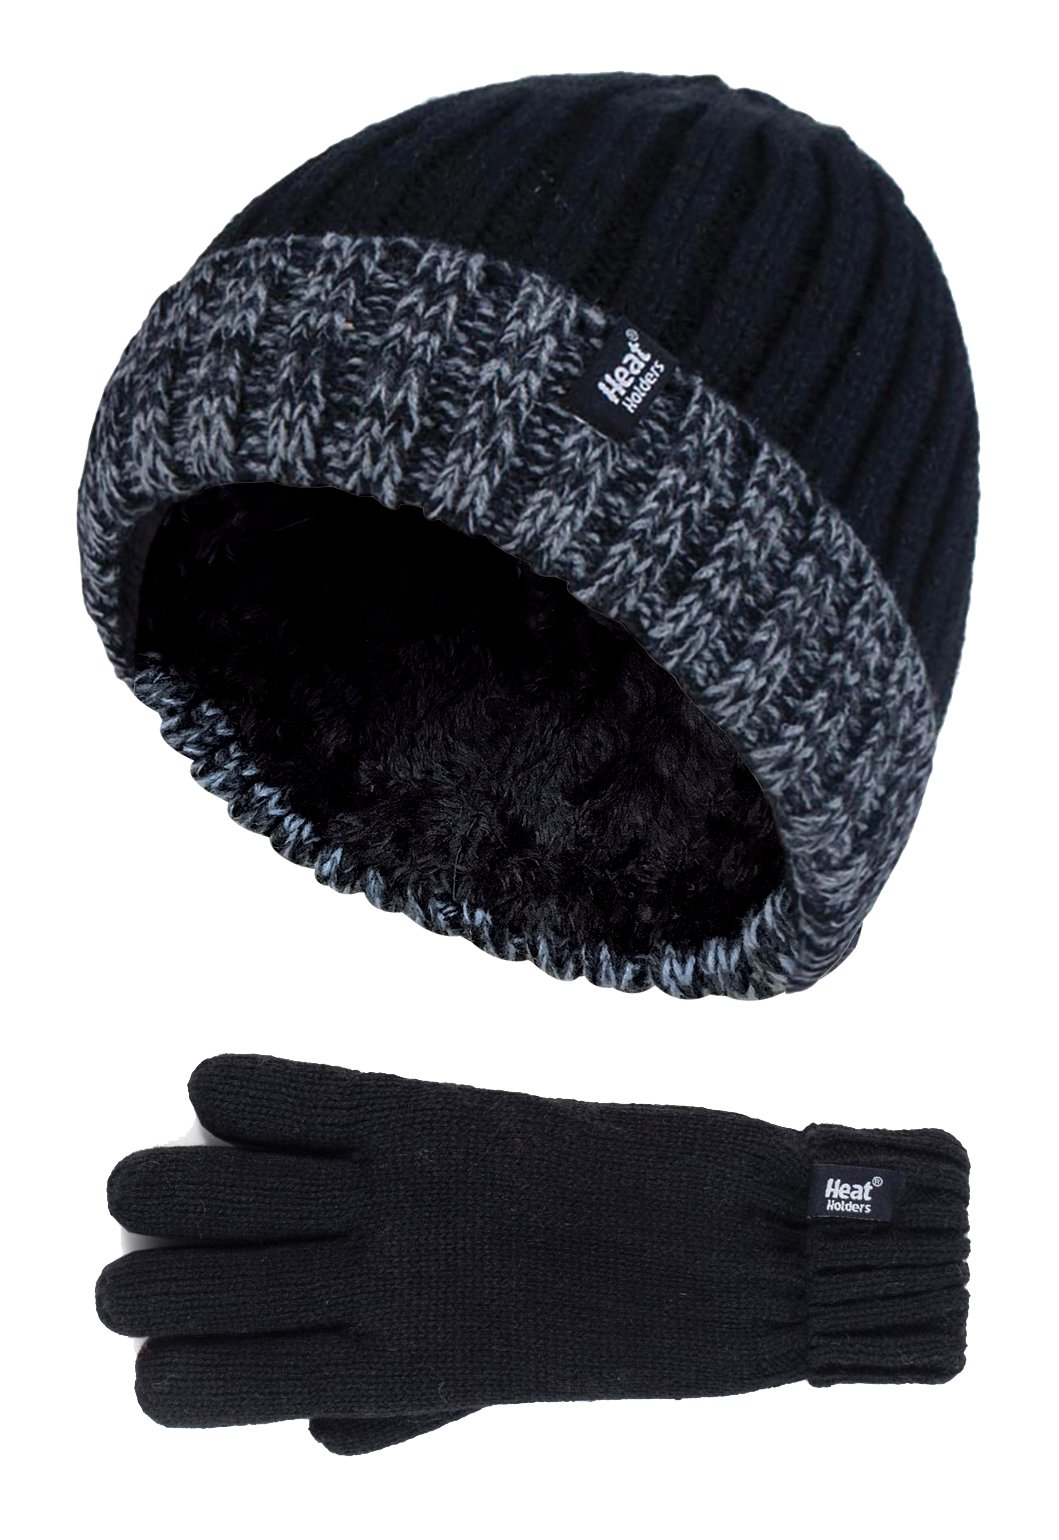 Heat Holders - Kids Boys Fleece Insulated Knit Winter Beanie Hat and Gloves Set (11+ Years, BS2P9)